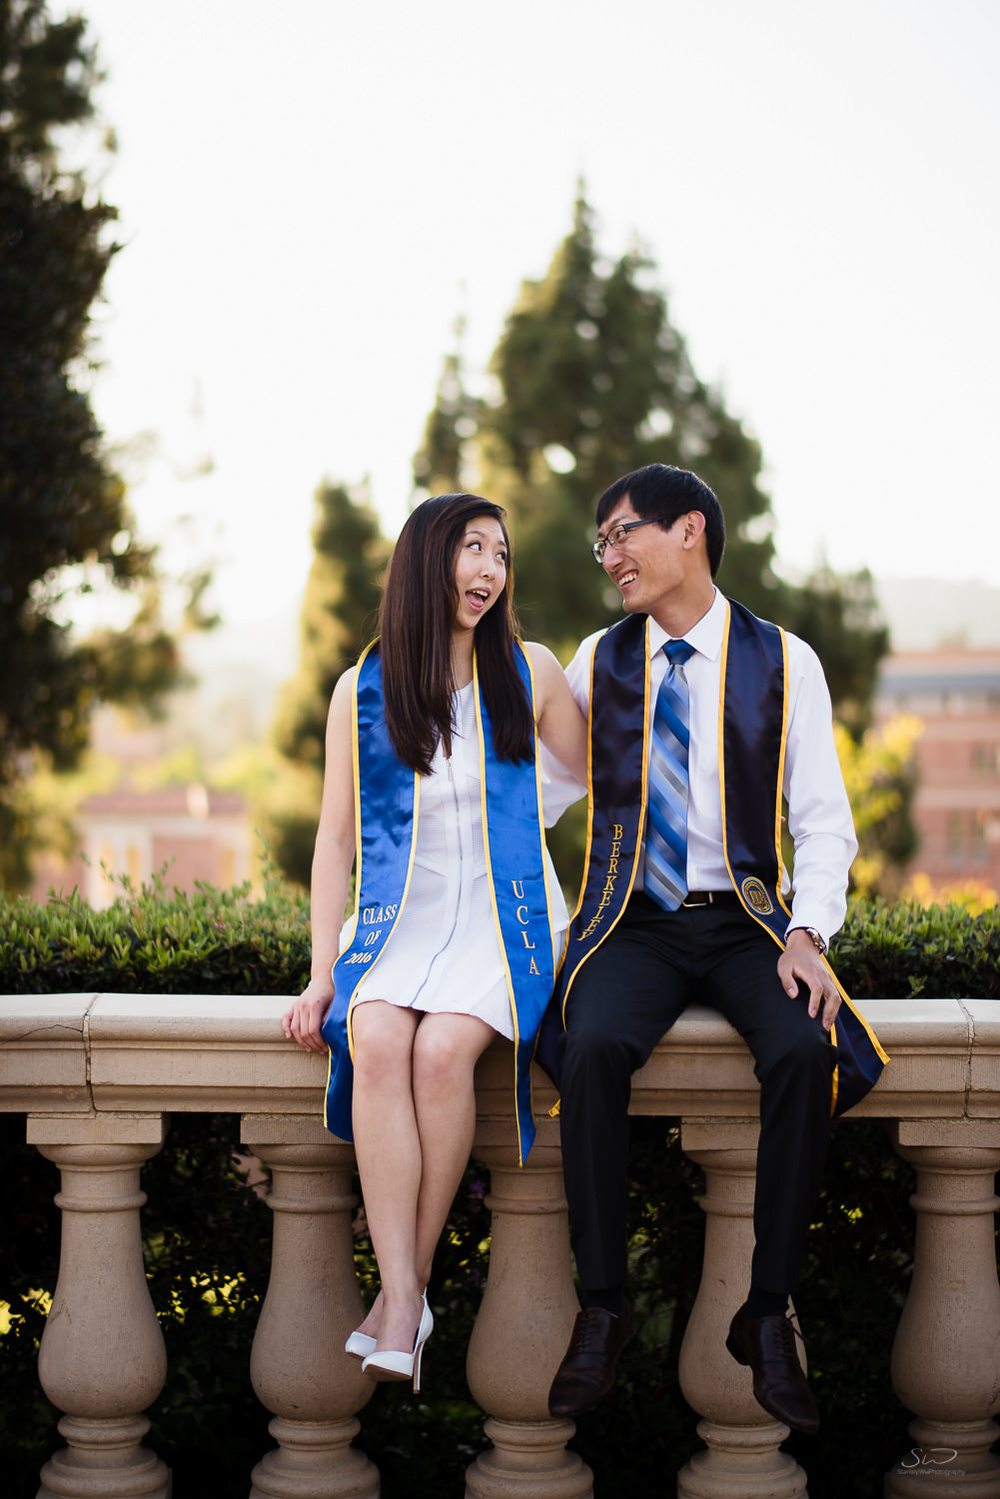 ucla-uc-berkeley-couple-grad-2.jpg